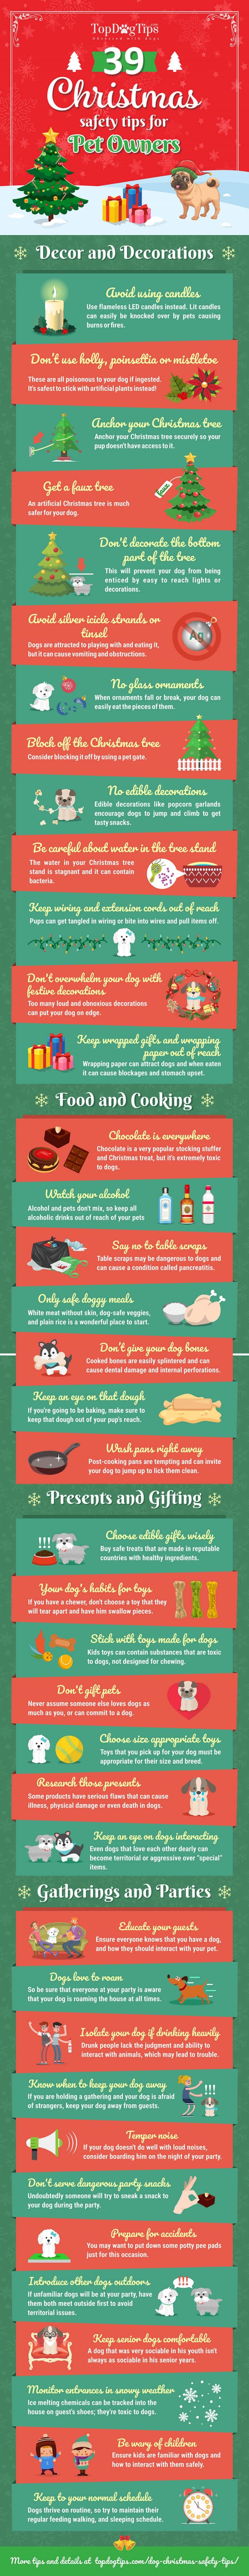 christmas safety tips for dogs